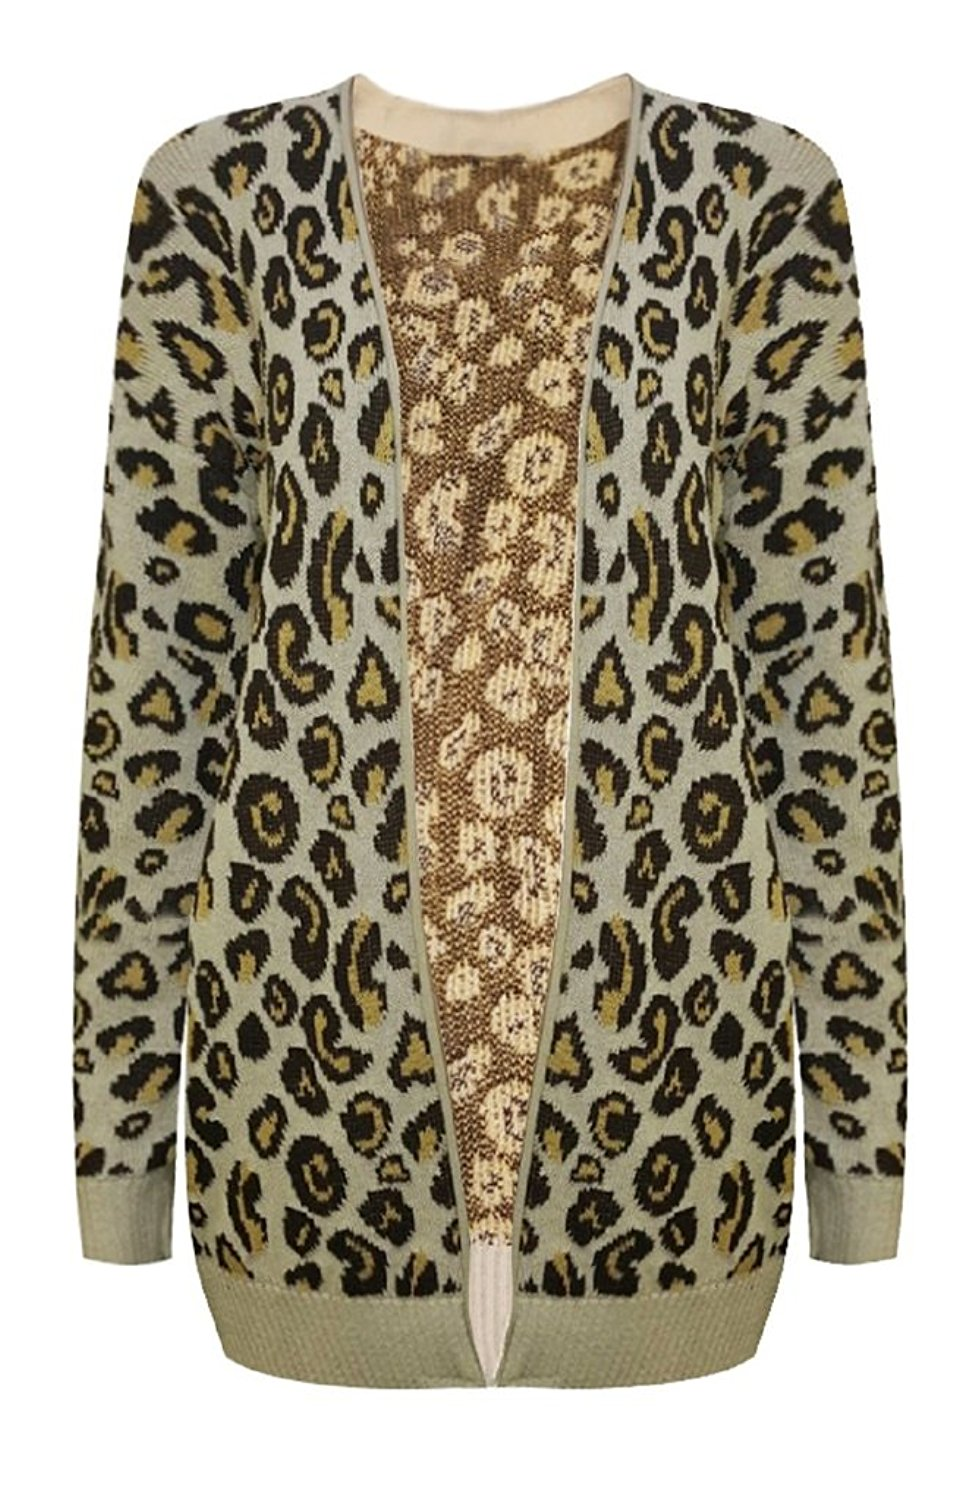 RM Fashions Womens Open Front Animal Print Knitted Leopard Cardigan